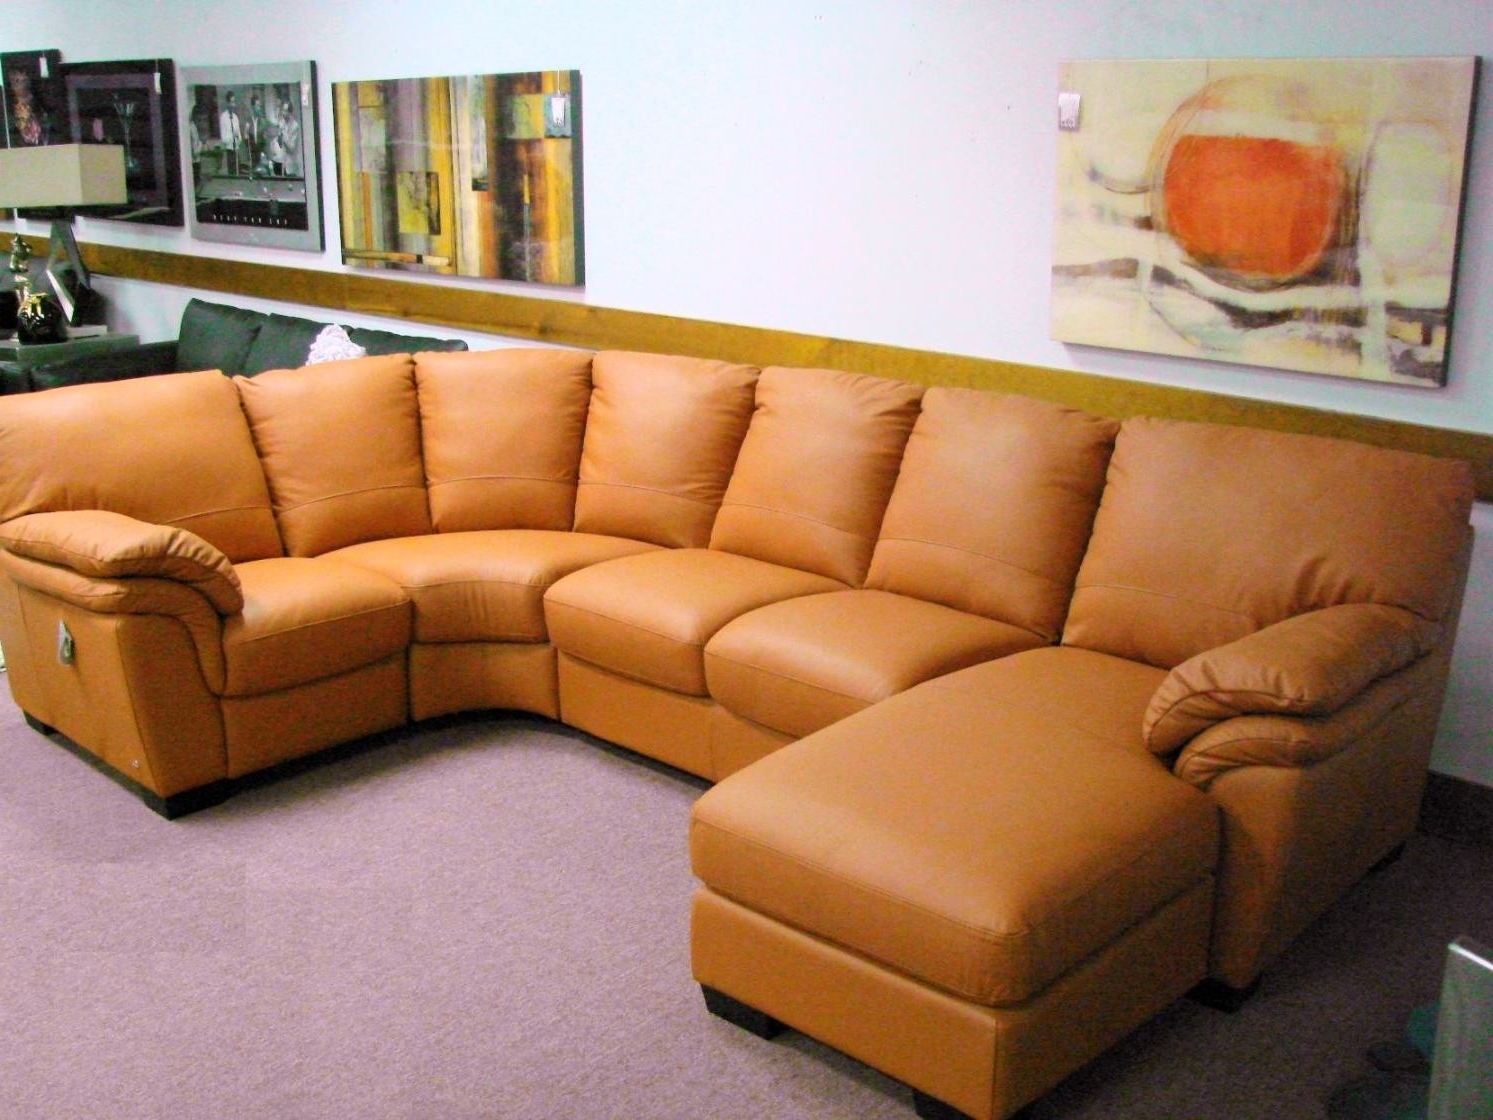 Fresh Light Tan Leather Couch 16 In Modern Sofa Inspiration With With Regard To Trendy Light Tan Leather Sofas (View 3 of 15)